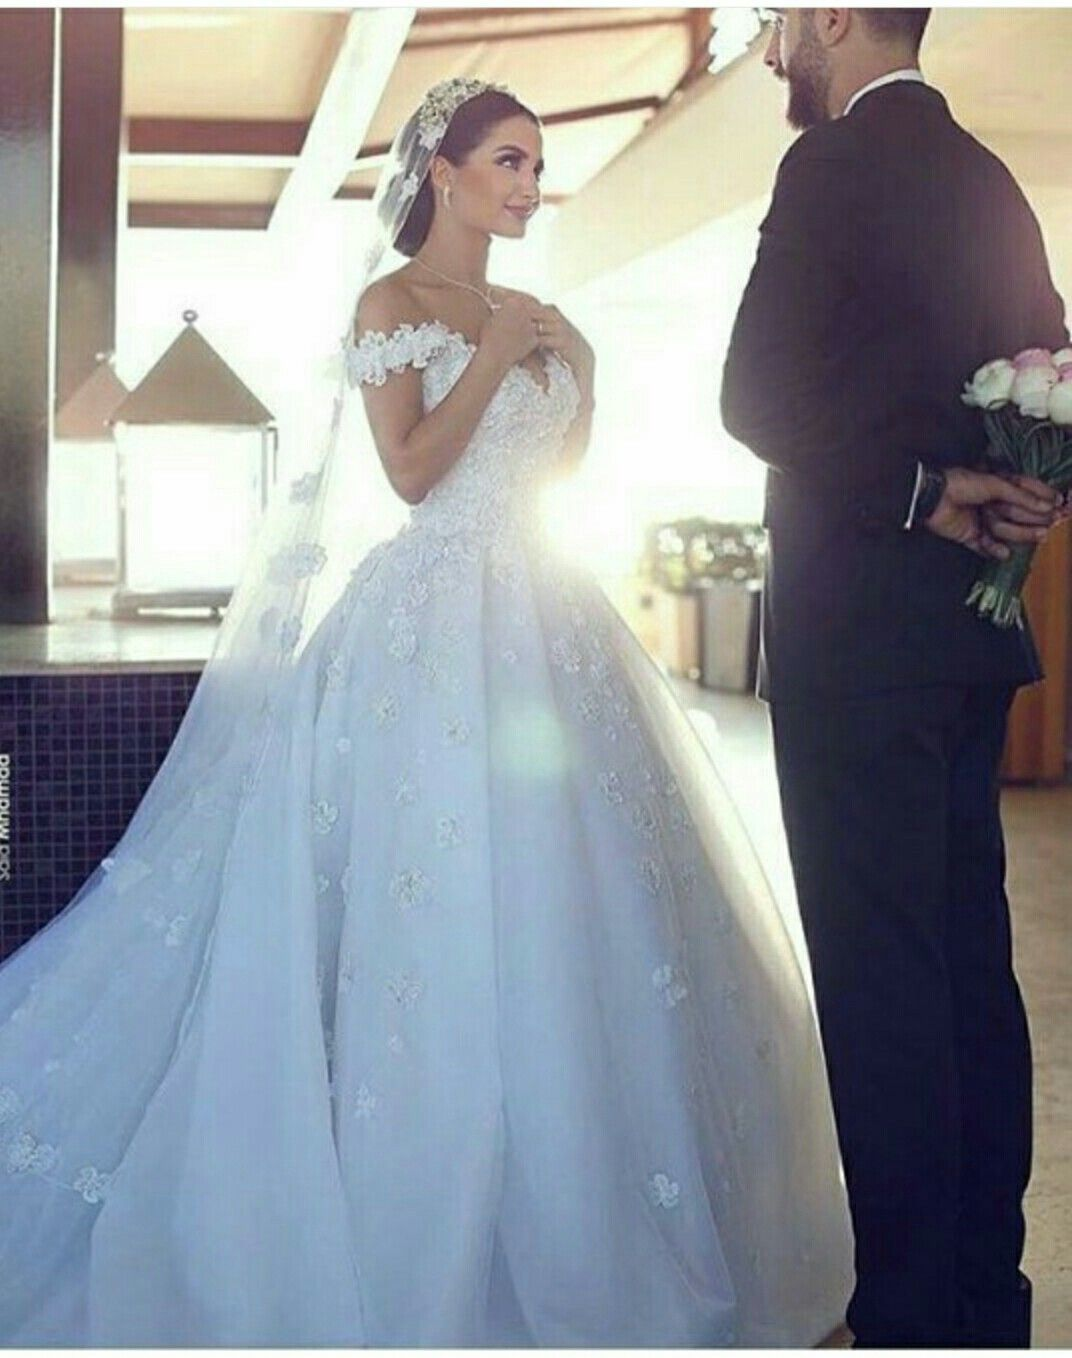 Amazing wedding dress weddinggoals white wedding pinterest